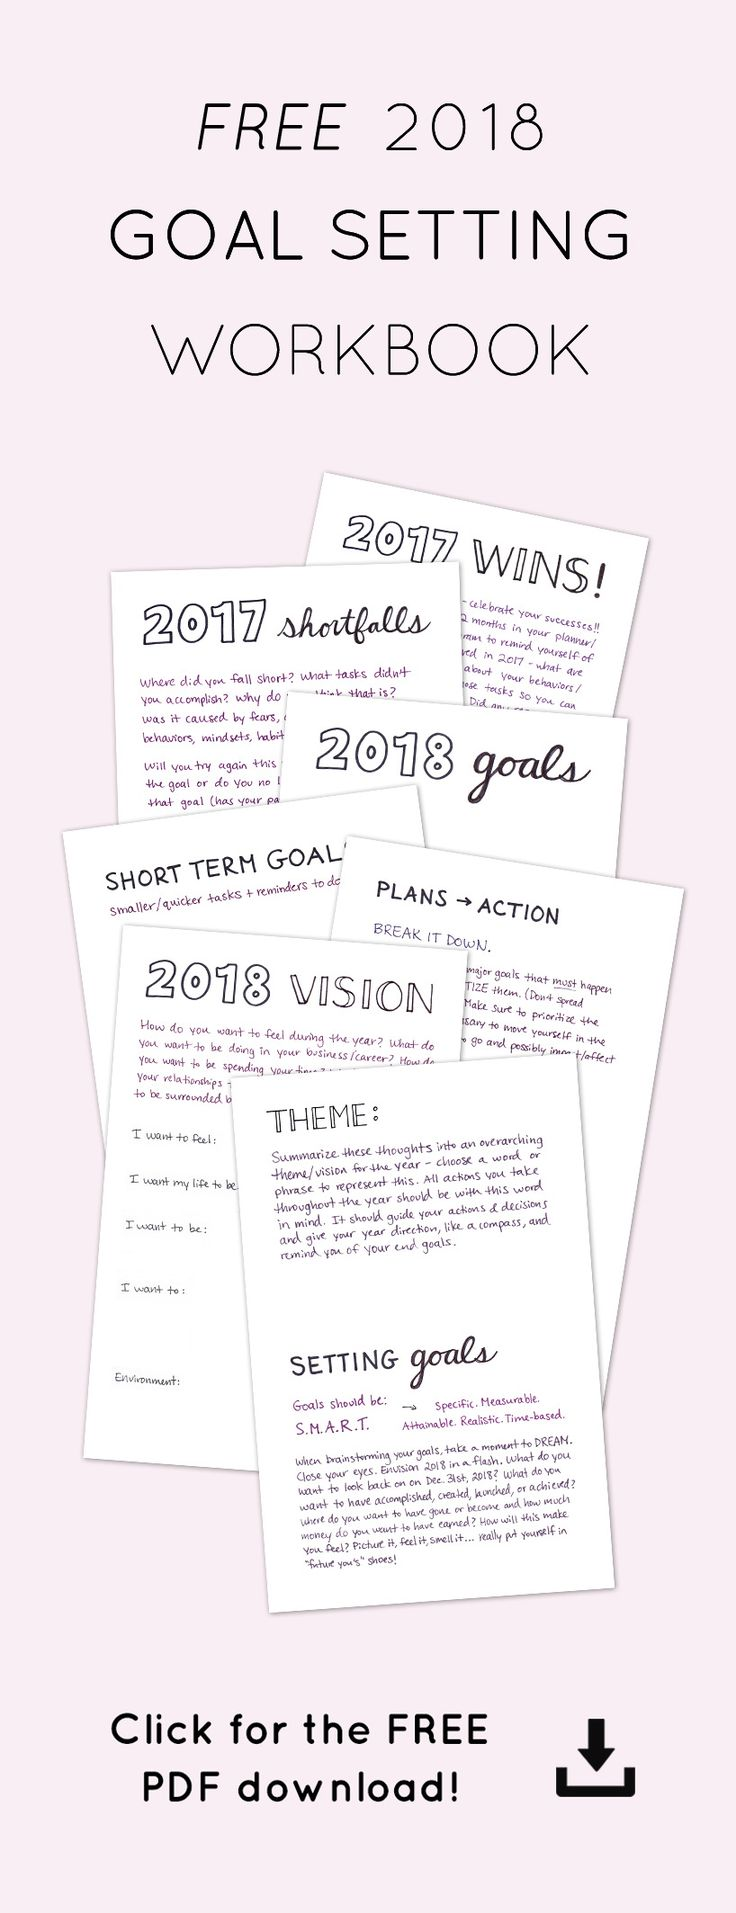 Worksheets Transition Words Worksheet best 25 transition words worksheet ideas on pinterest 2018 goal setting workbook